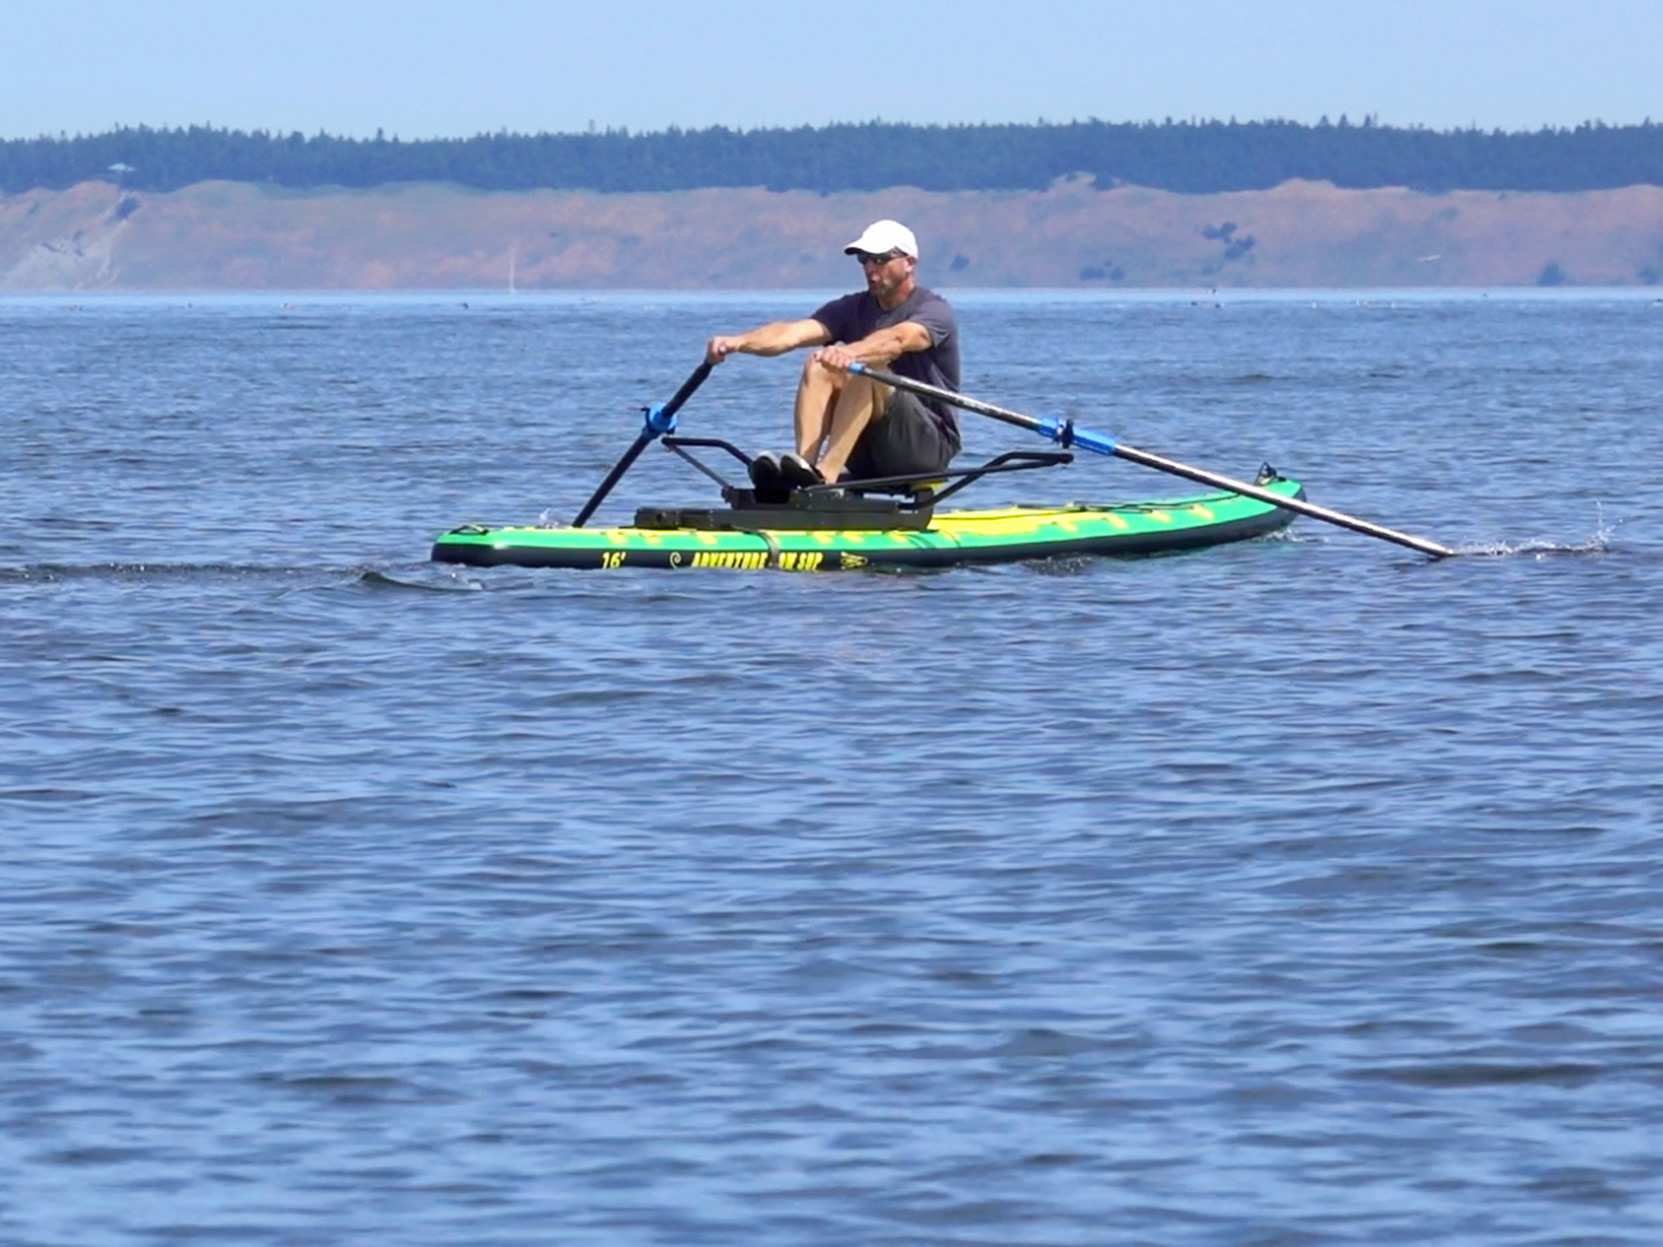 oar-board-stand-up-paddle-board-rower-whitehall-rowing-and-sail-Peter-ADV-16-SUP-Whitby